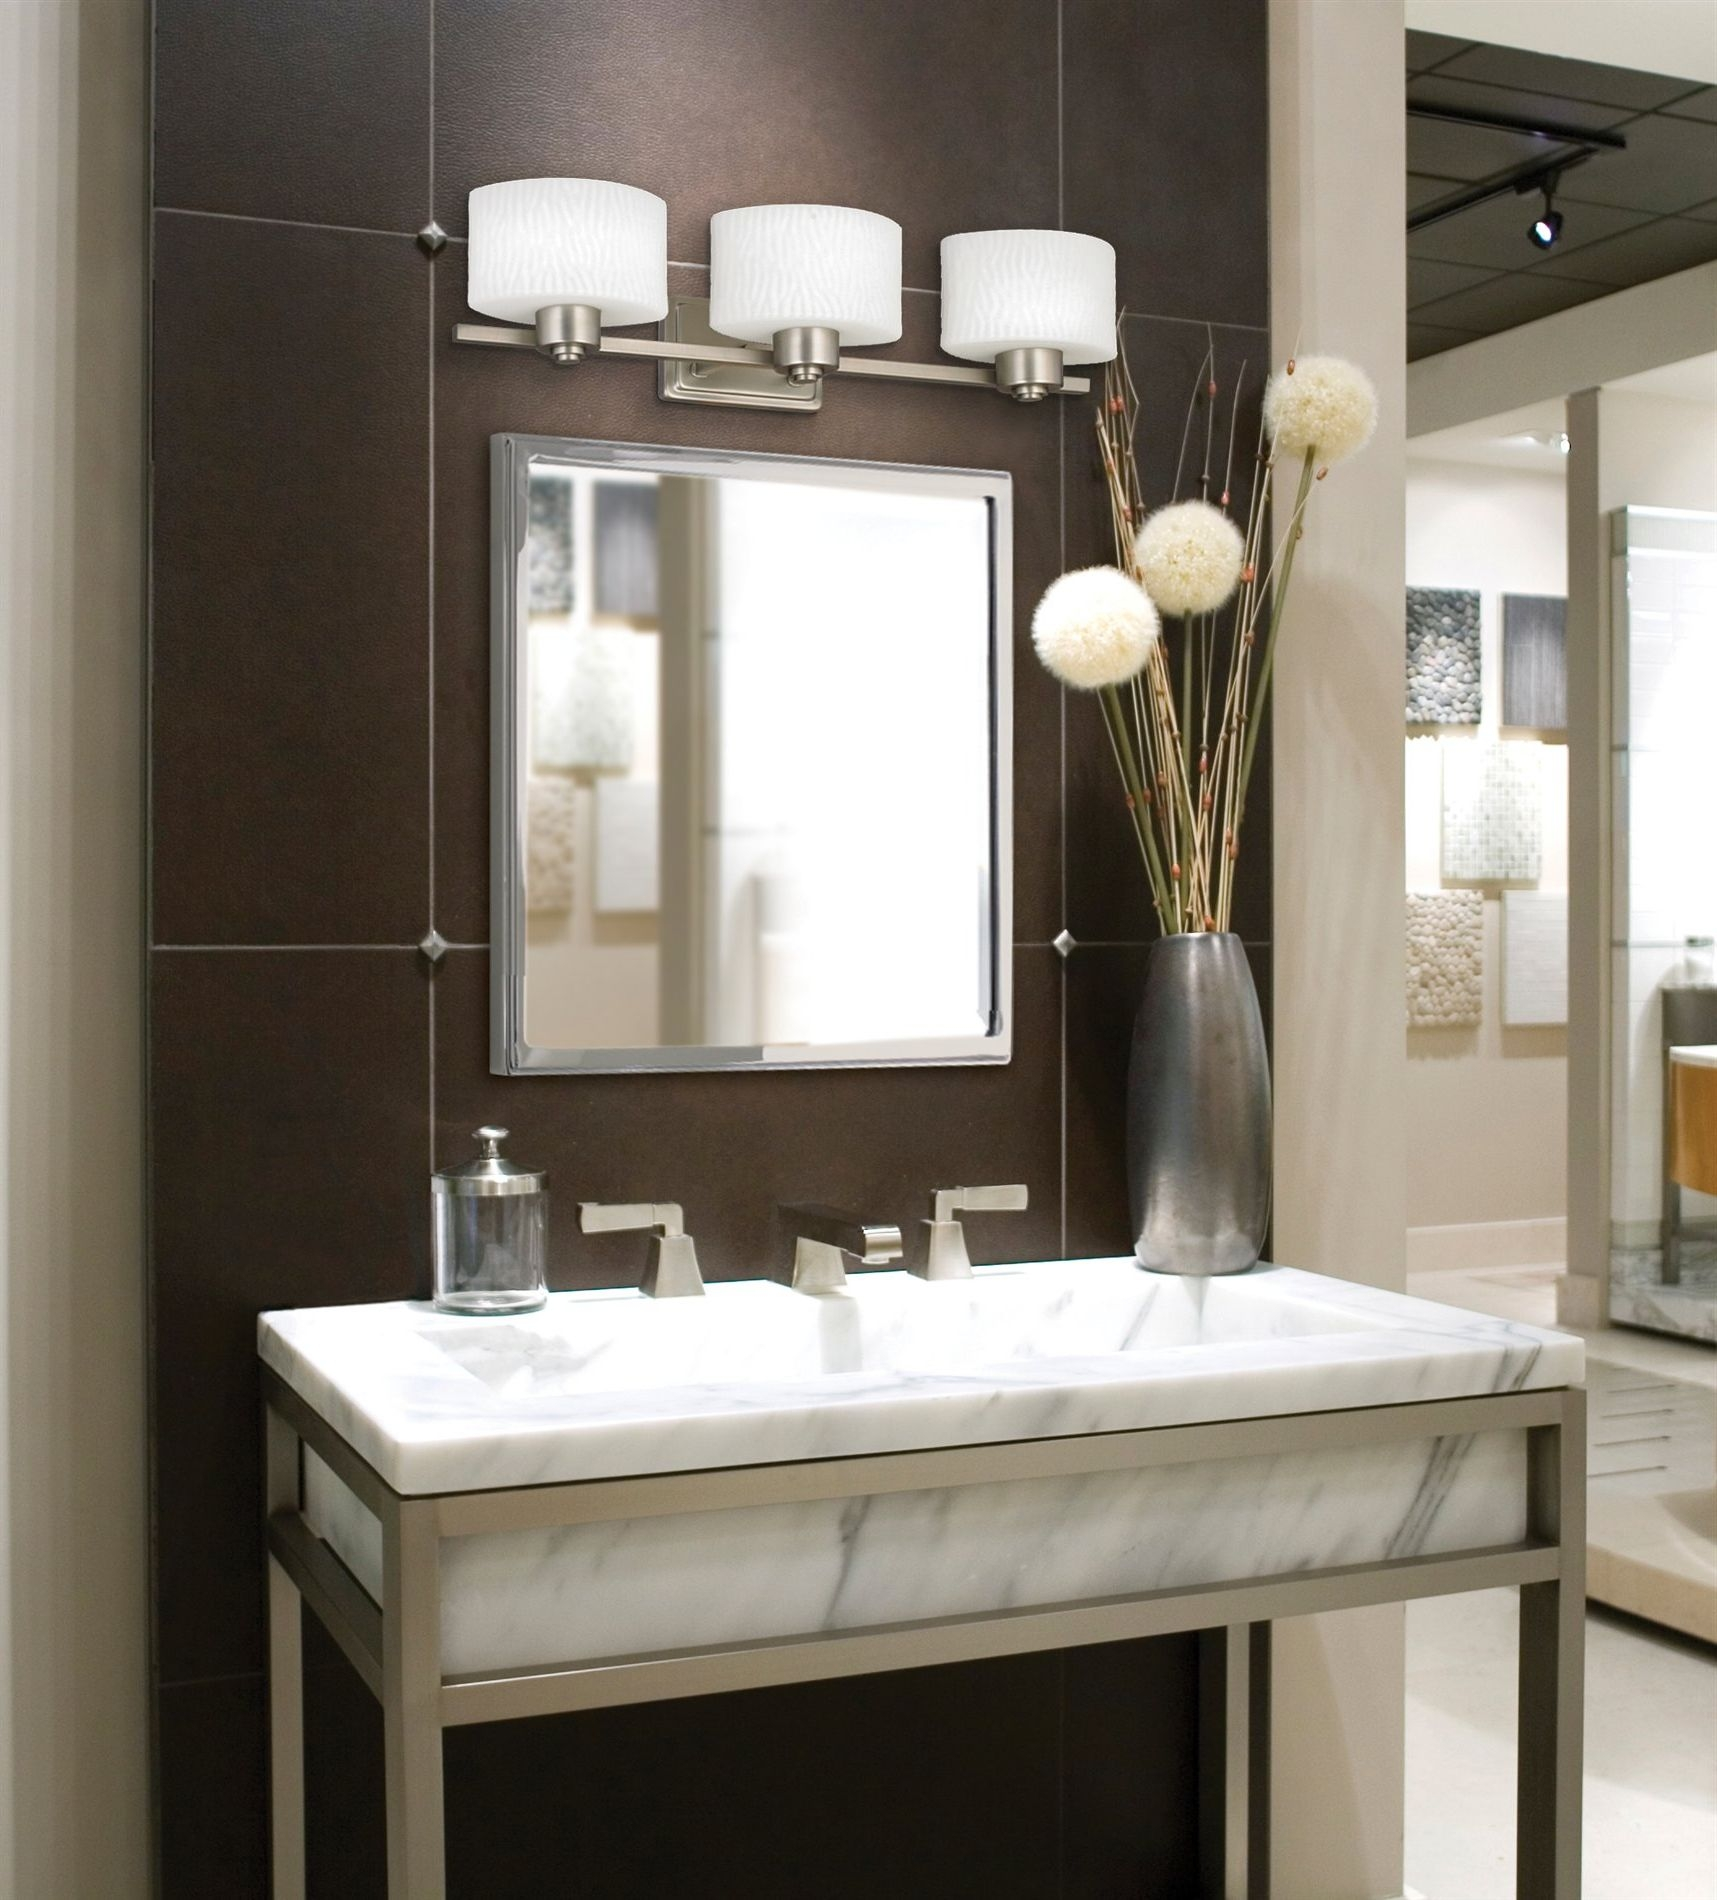 Permalink to Over Mirror Lights For Bathrooms